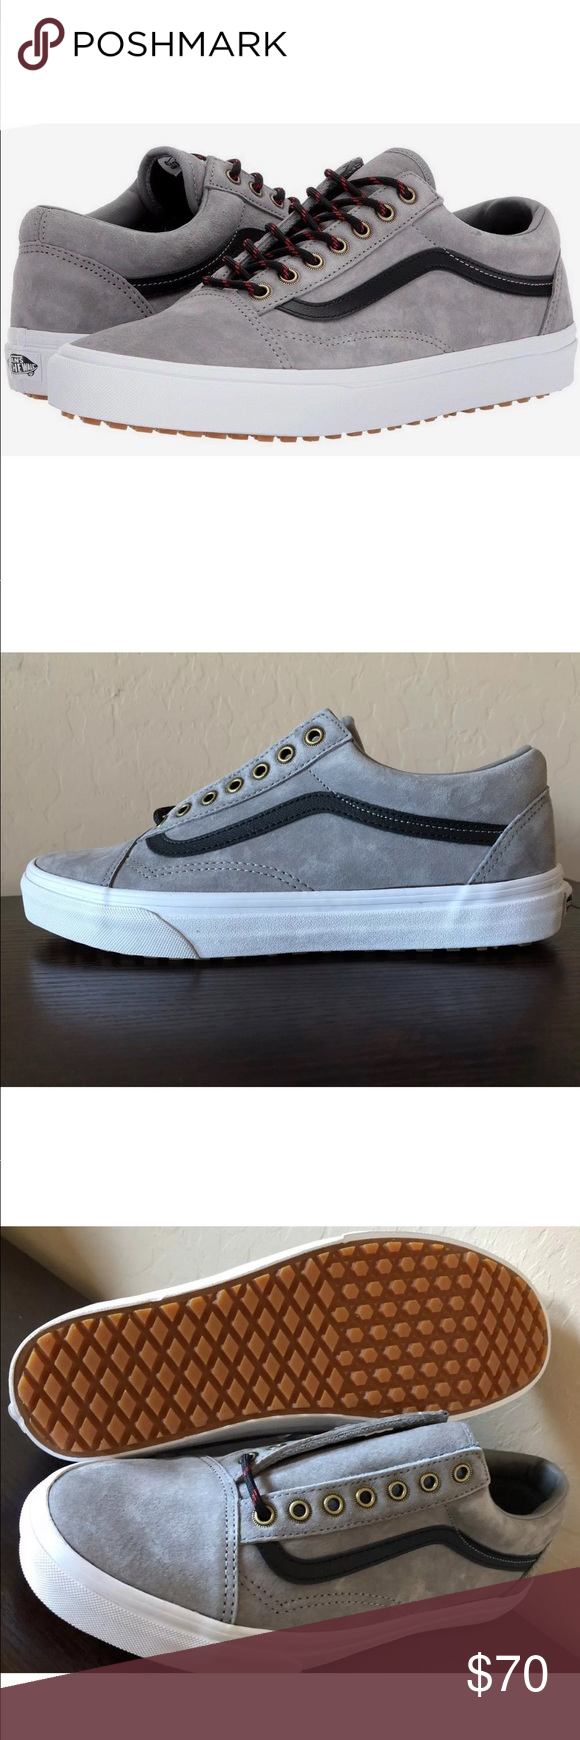 Vans Men's Old Skool MTE Frost GrayWhite Shoes NEW